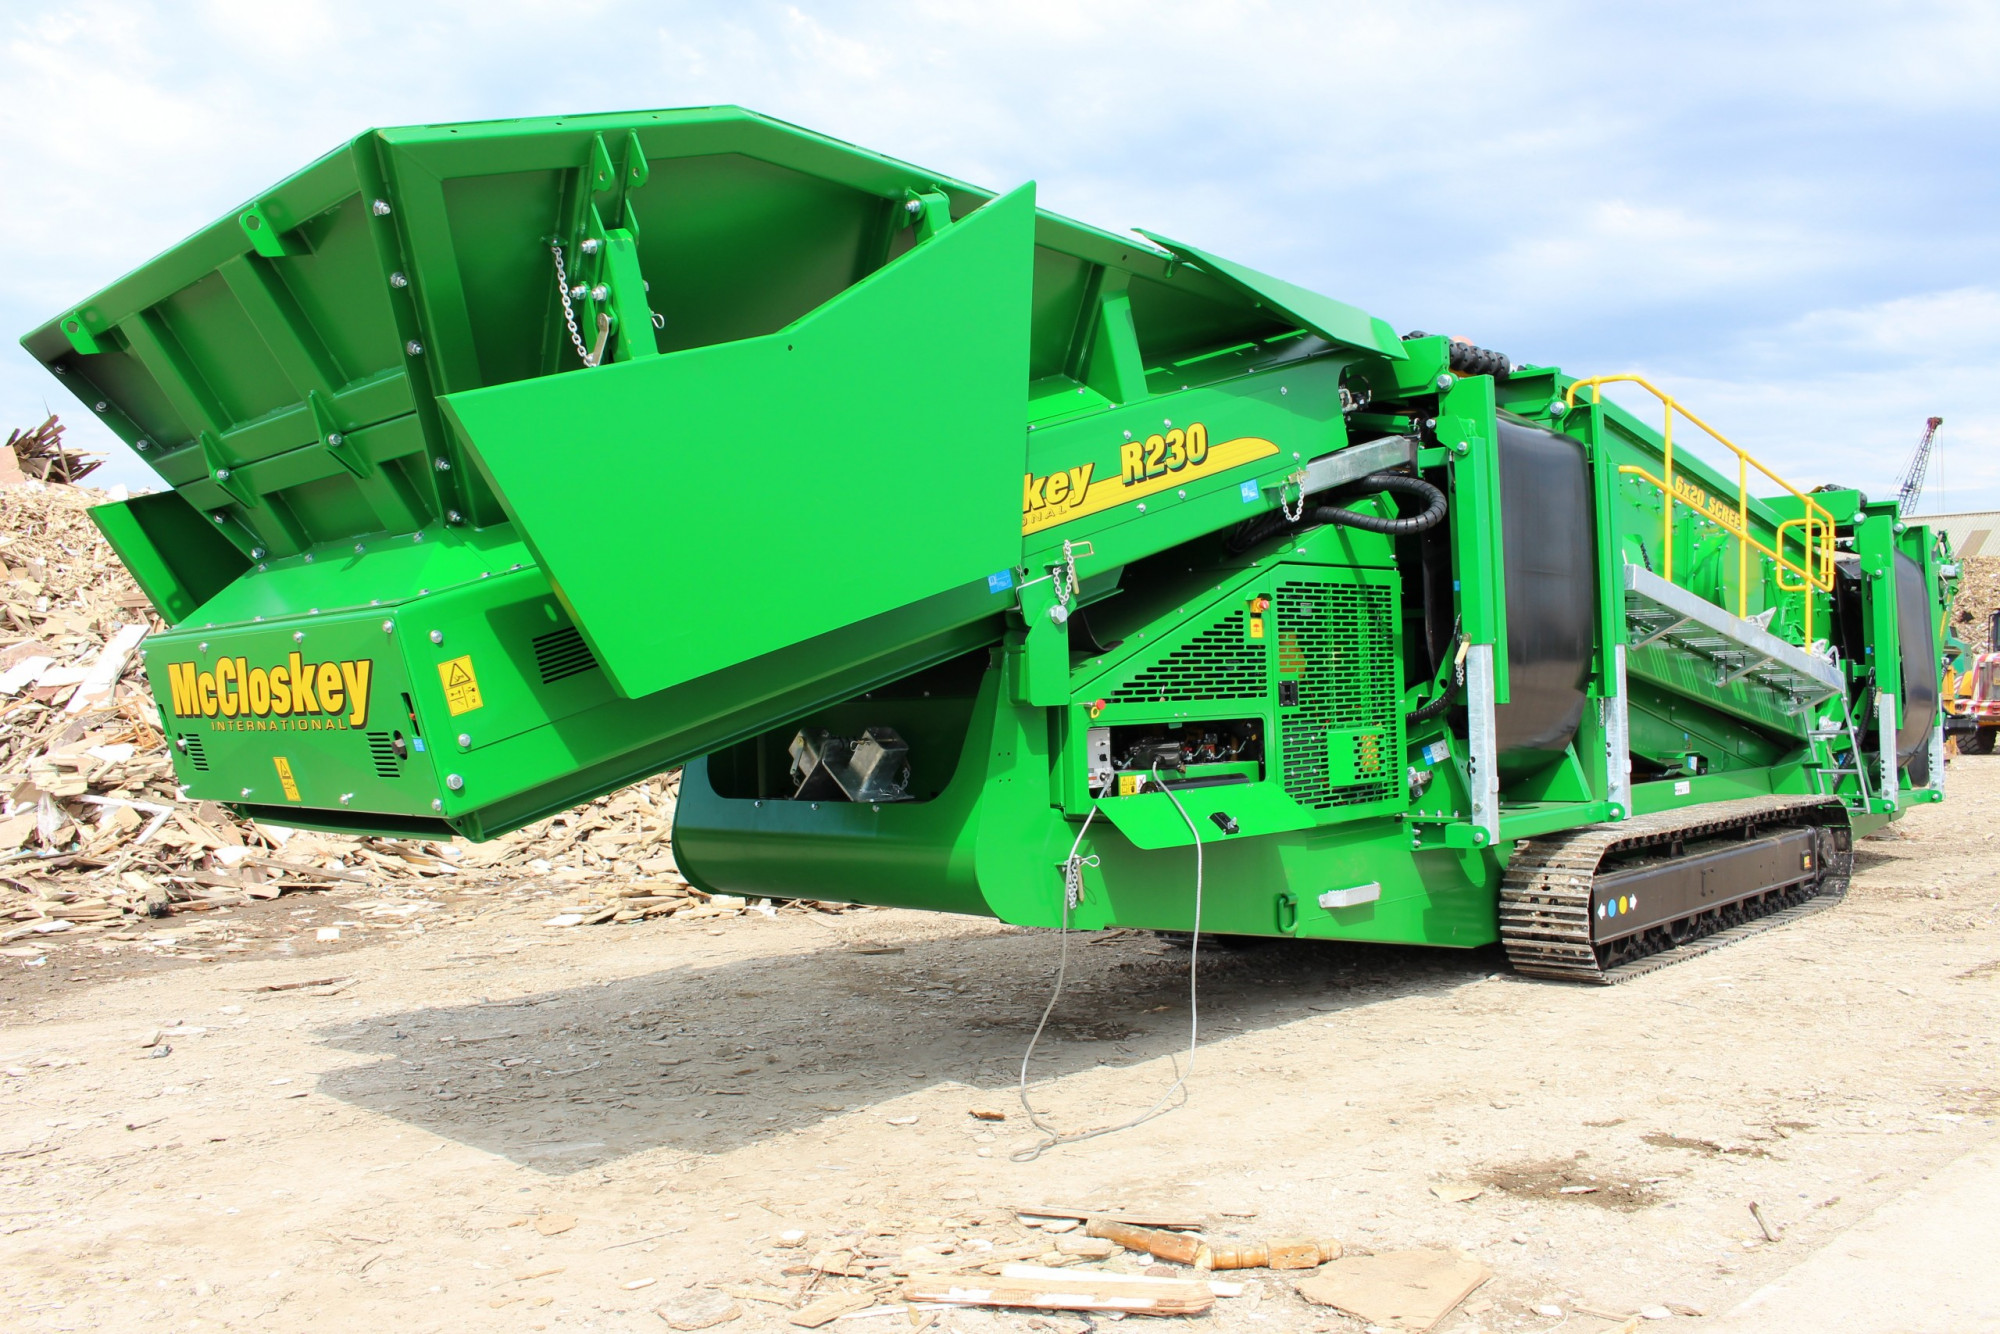 Countrystyle Takes Delivery Of A New Arjes Shredder And